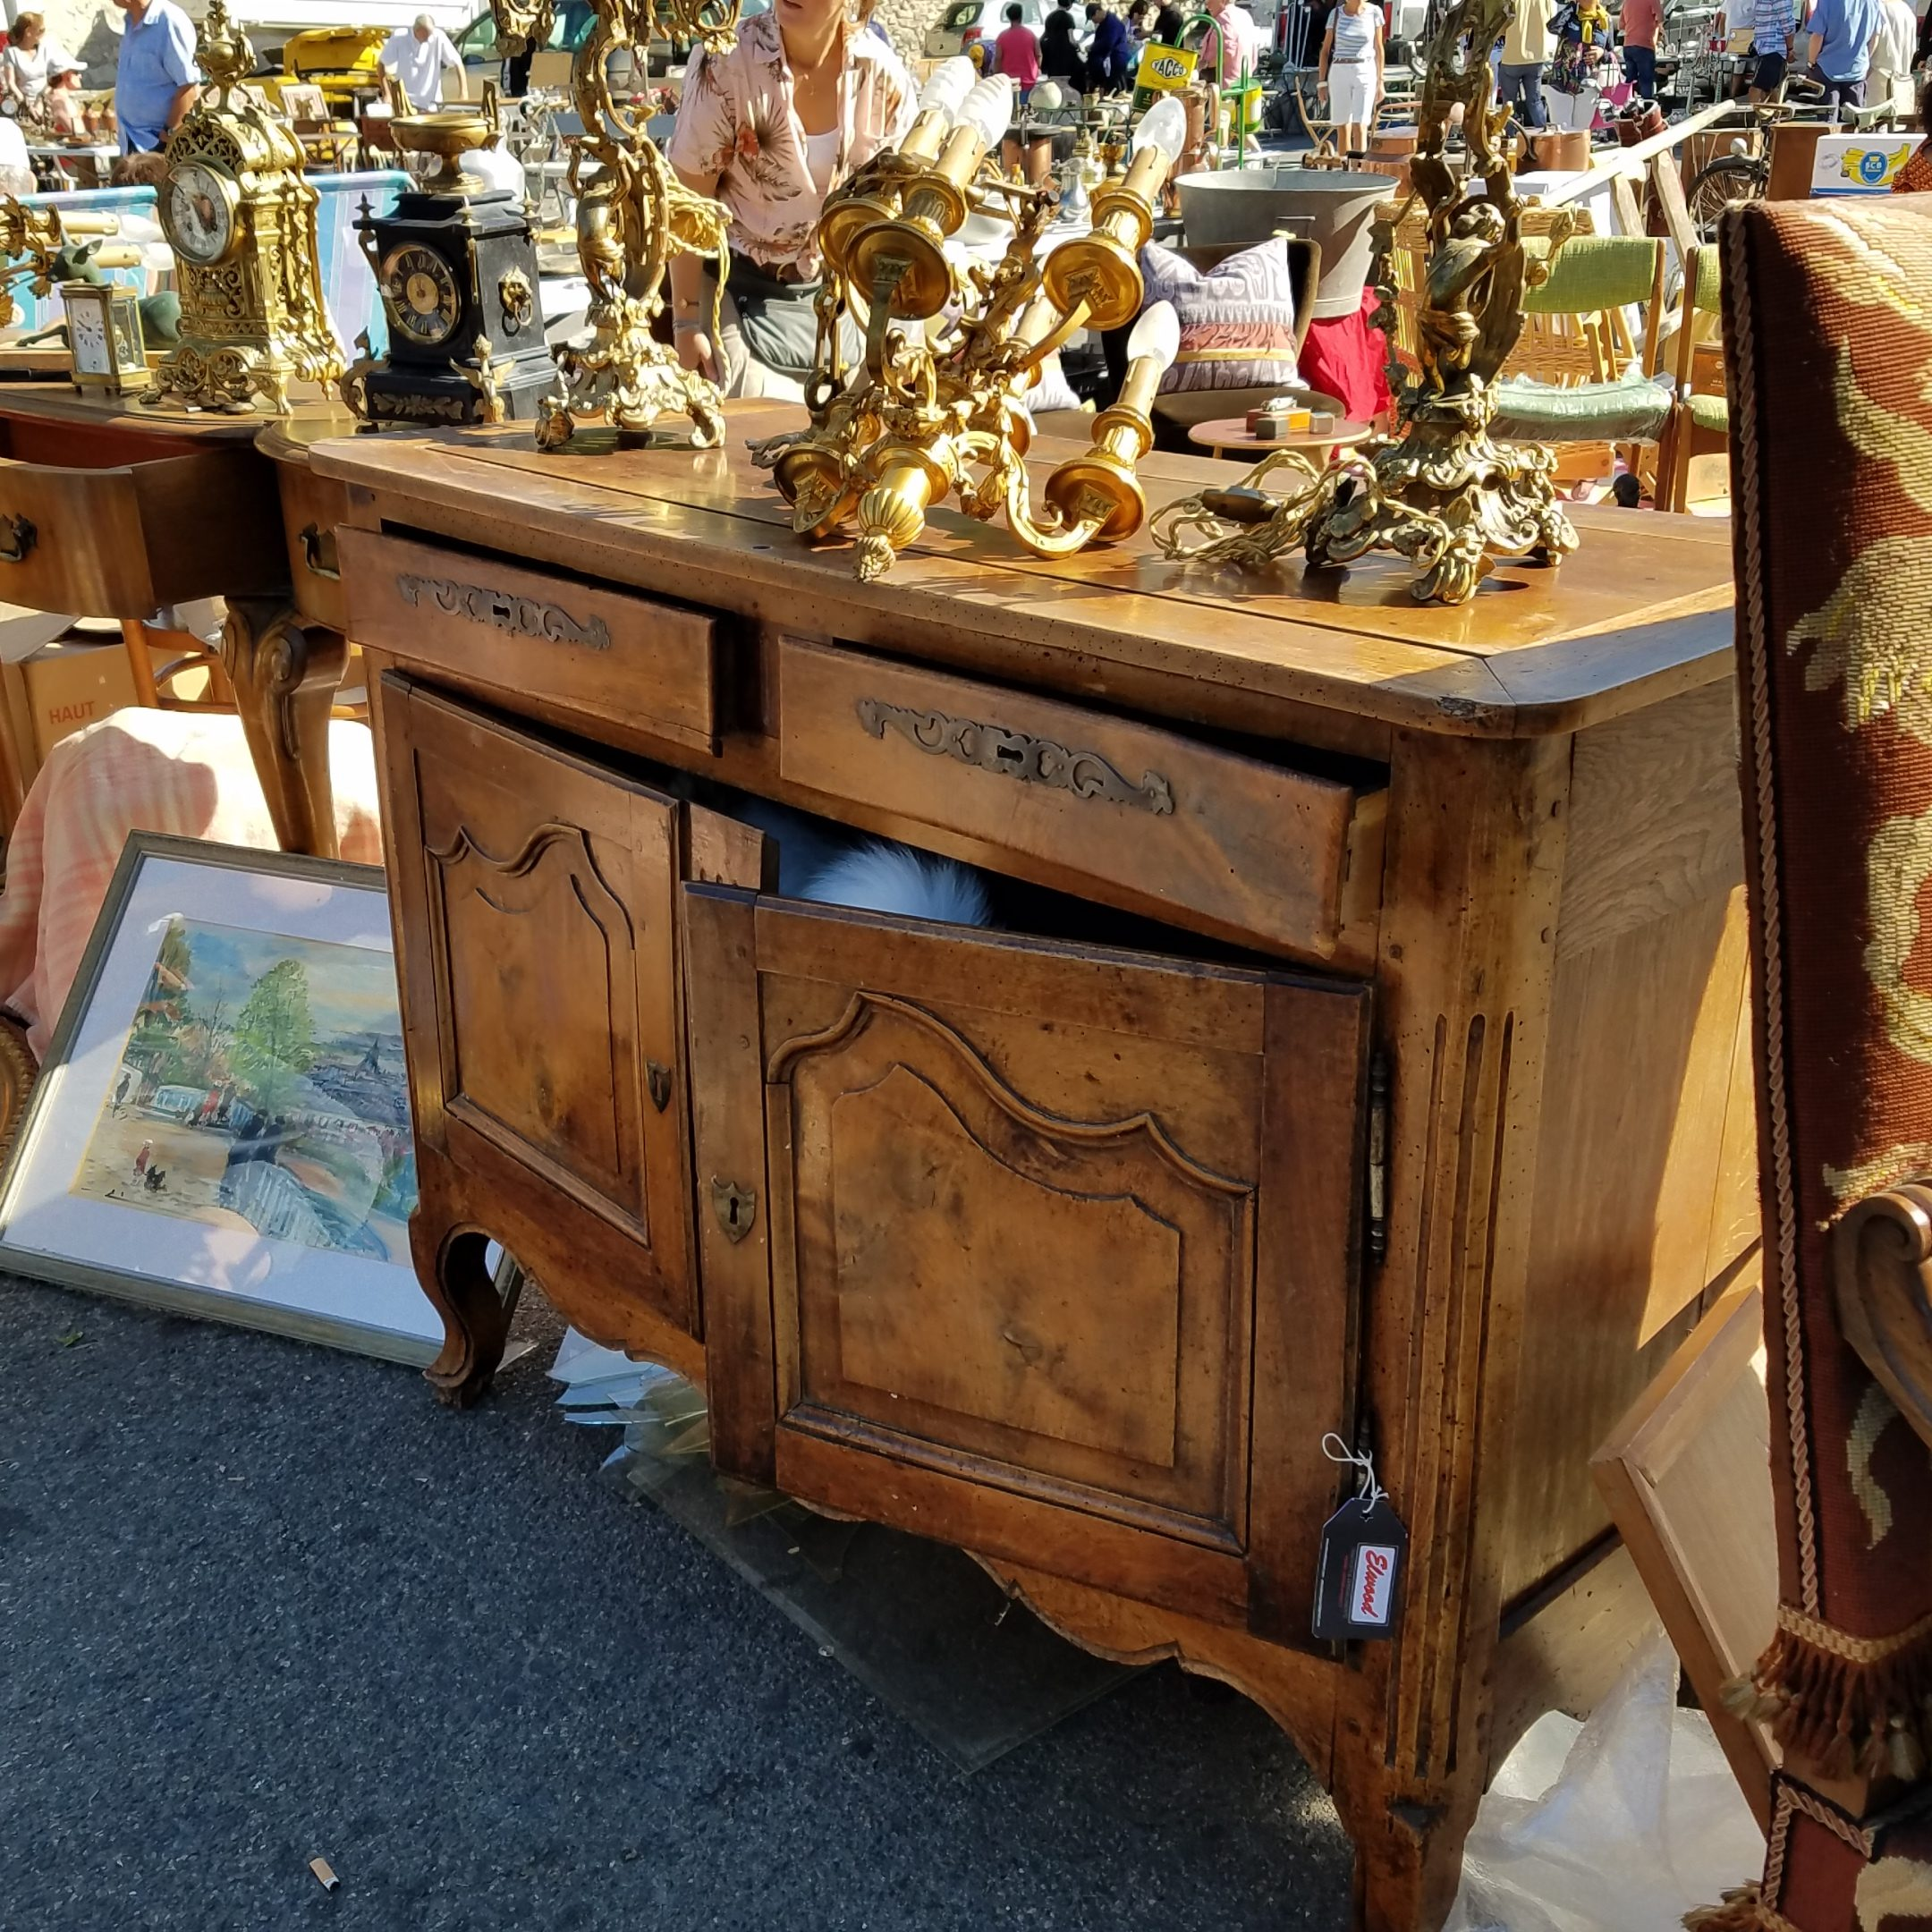 Lolo French Antiques.Shopping antique fair in Provence